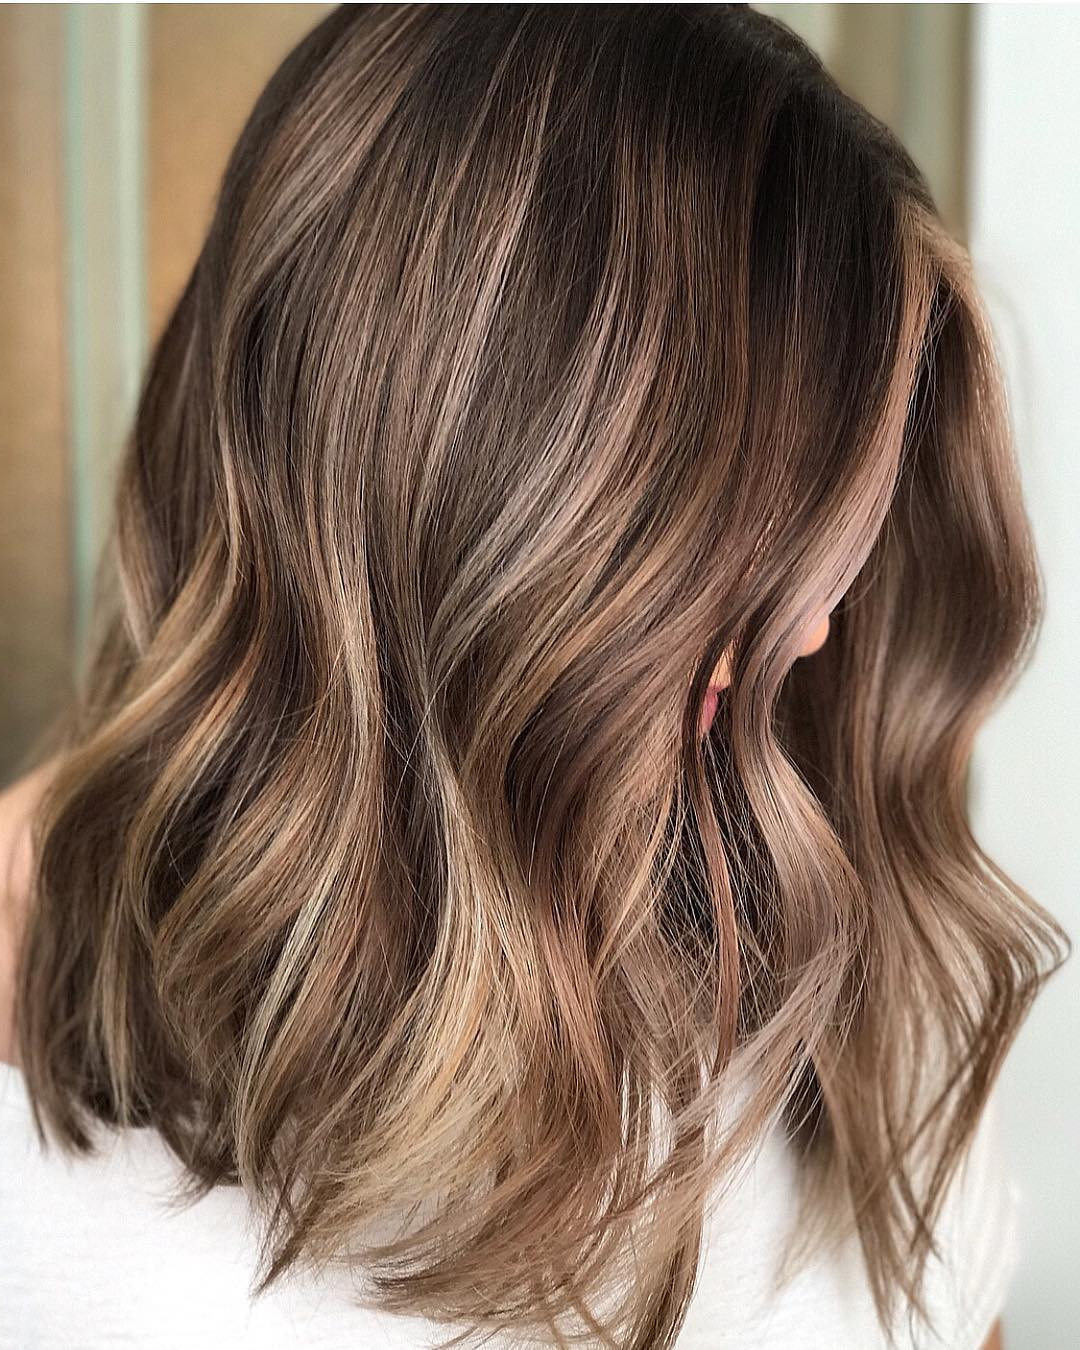 Popular Medium Hairstyles And Highlights Throughout 10 Trendy Brown Balayage Hairstyles For Medium Length Hair (View 14 of 20)